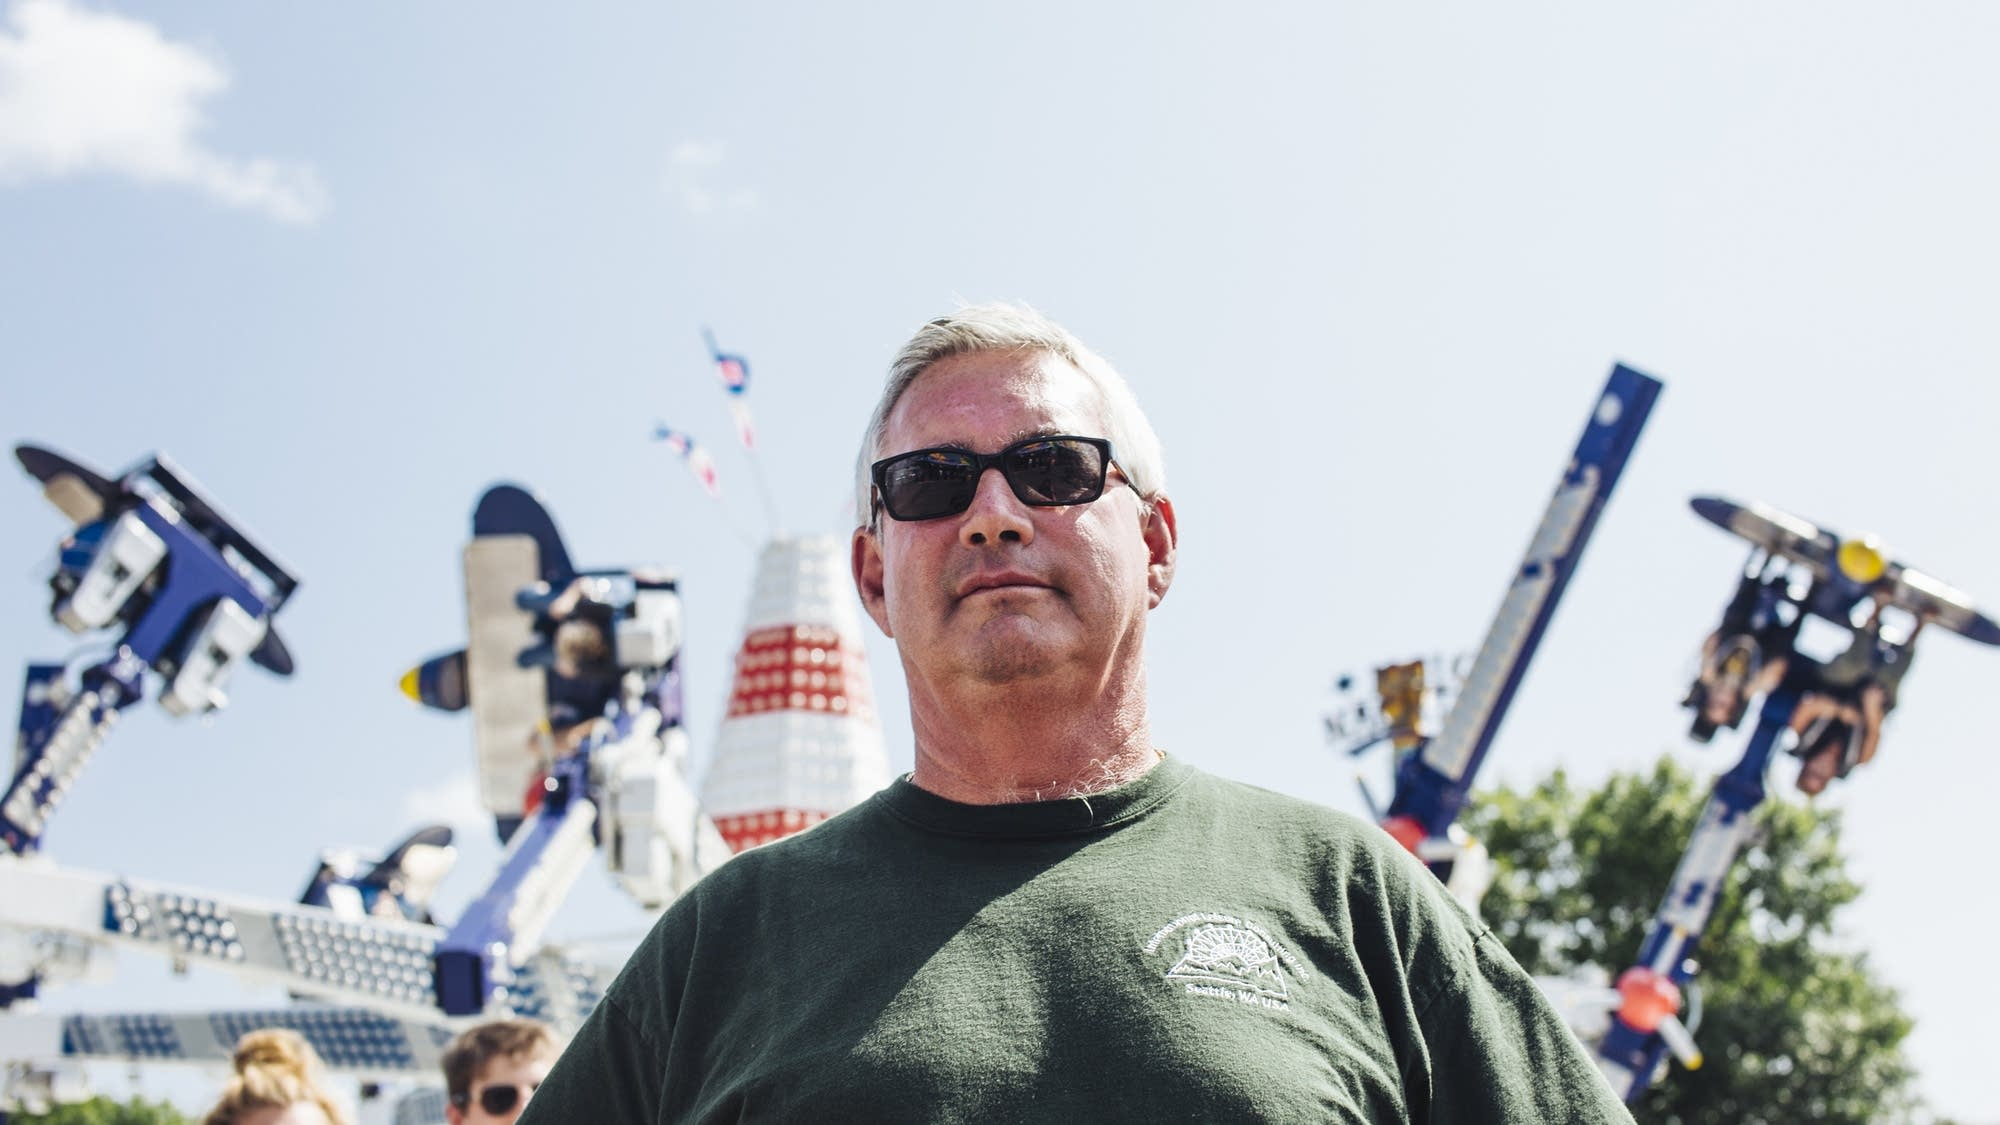 Joe Bixler is the Minnesota State Fair's chief ride inspector.